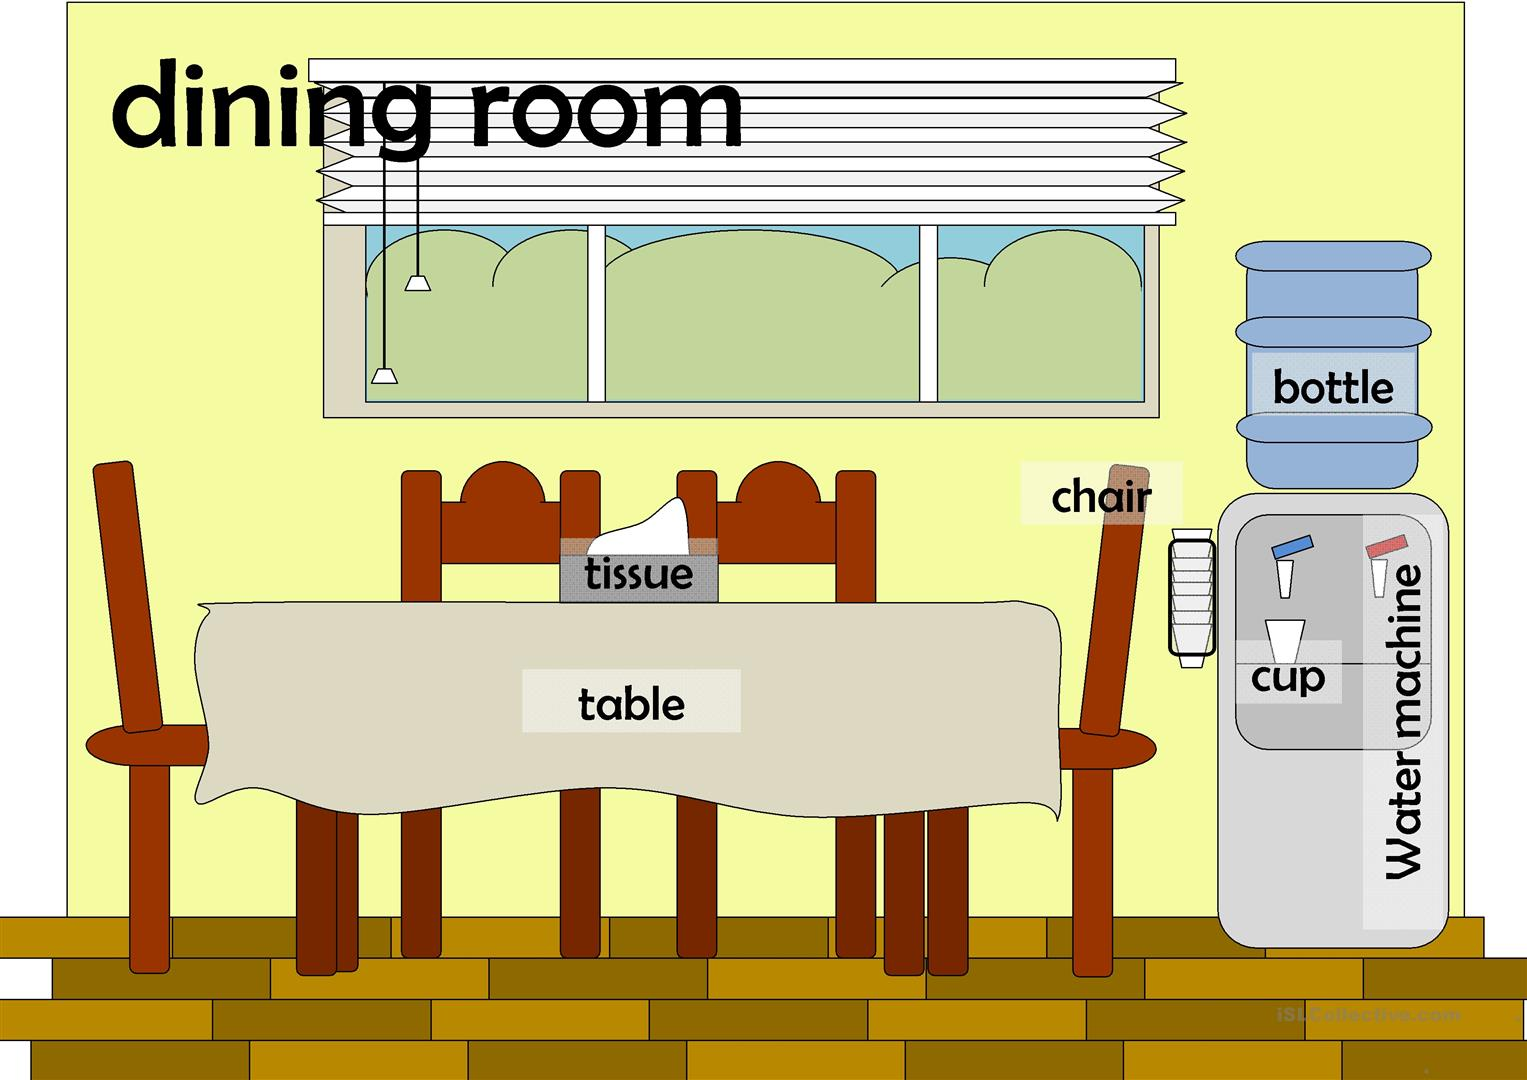 Rooms in a house flashcards worksheet free esl for Dining room vocabulary esl